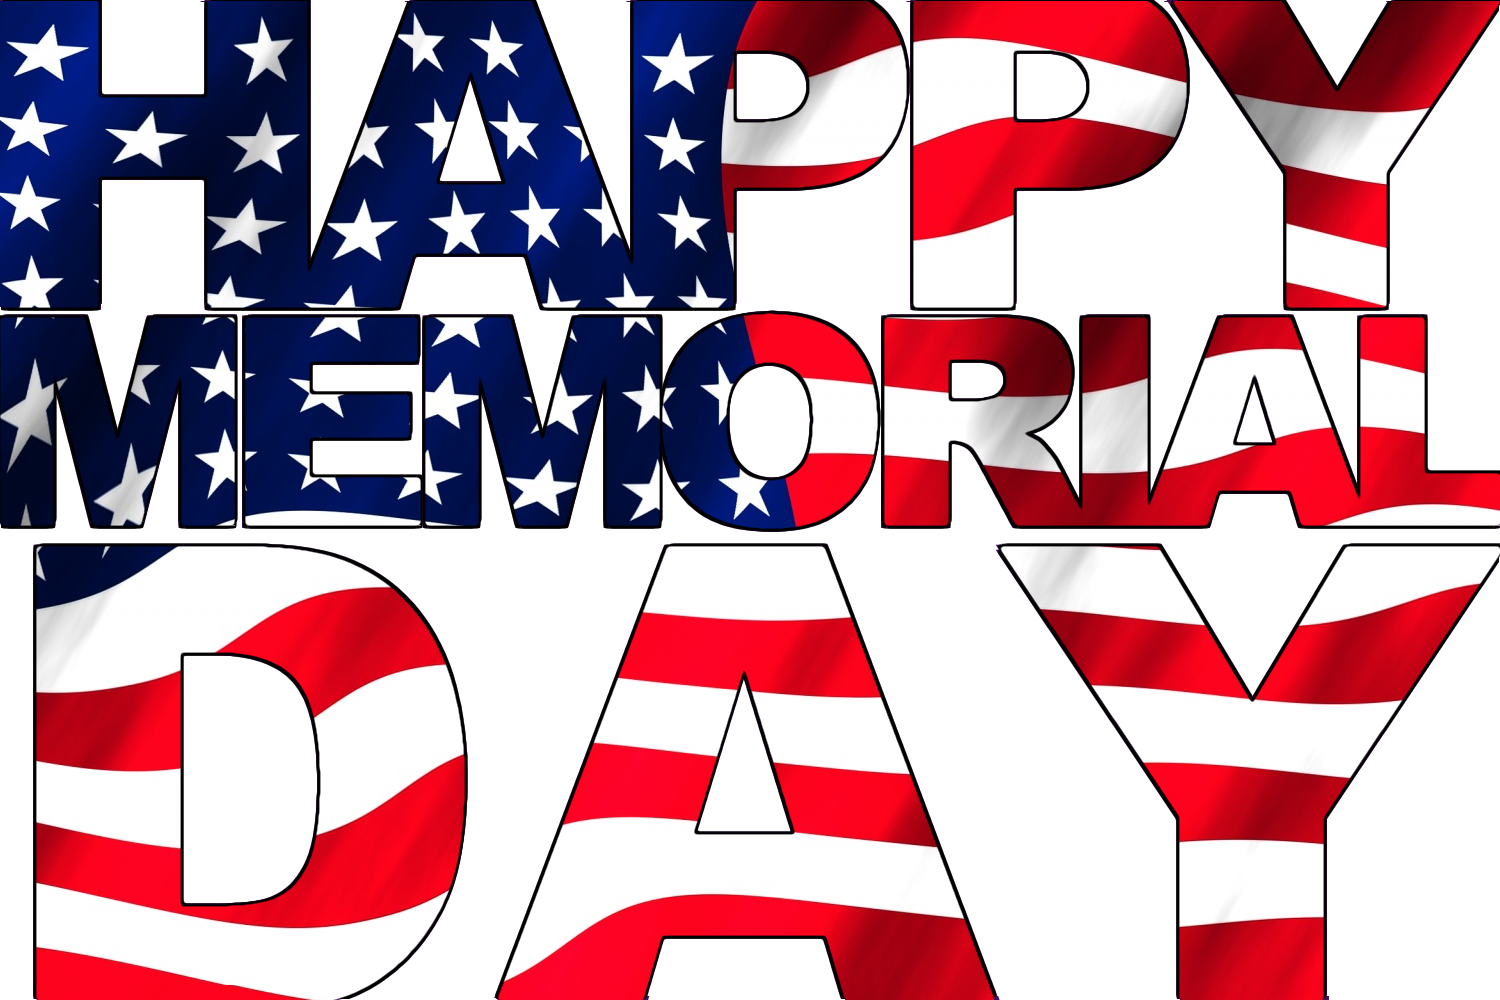 Veterans day clipart 1500x1000 vector royalty free HD Usa Memorial Day Png Images - Memorial Day Png ... vector royalty free